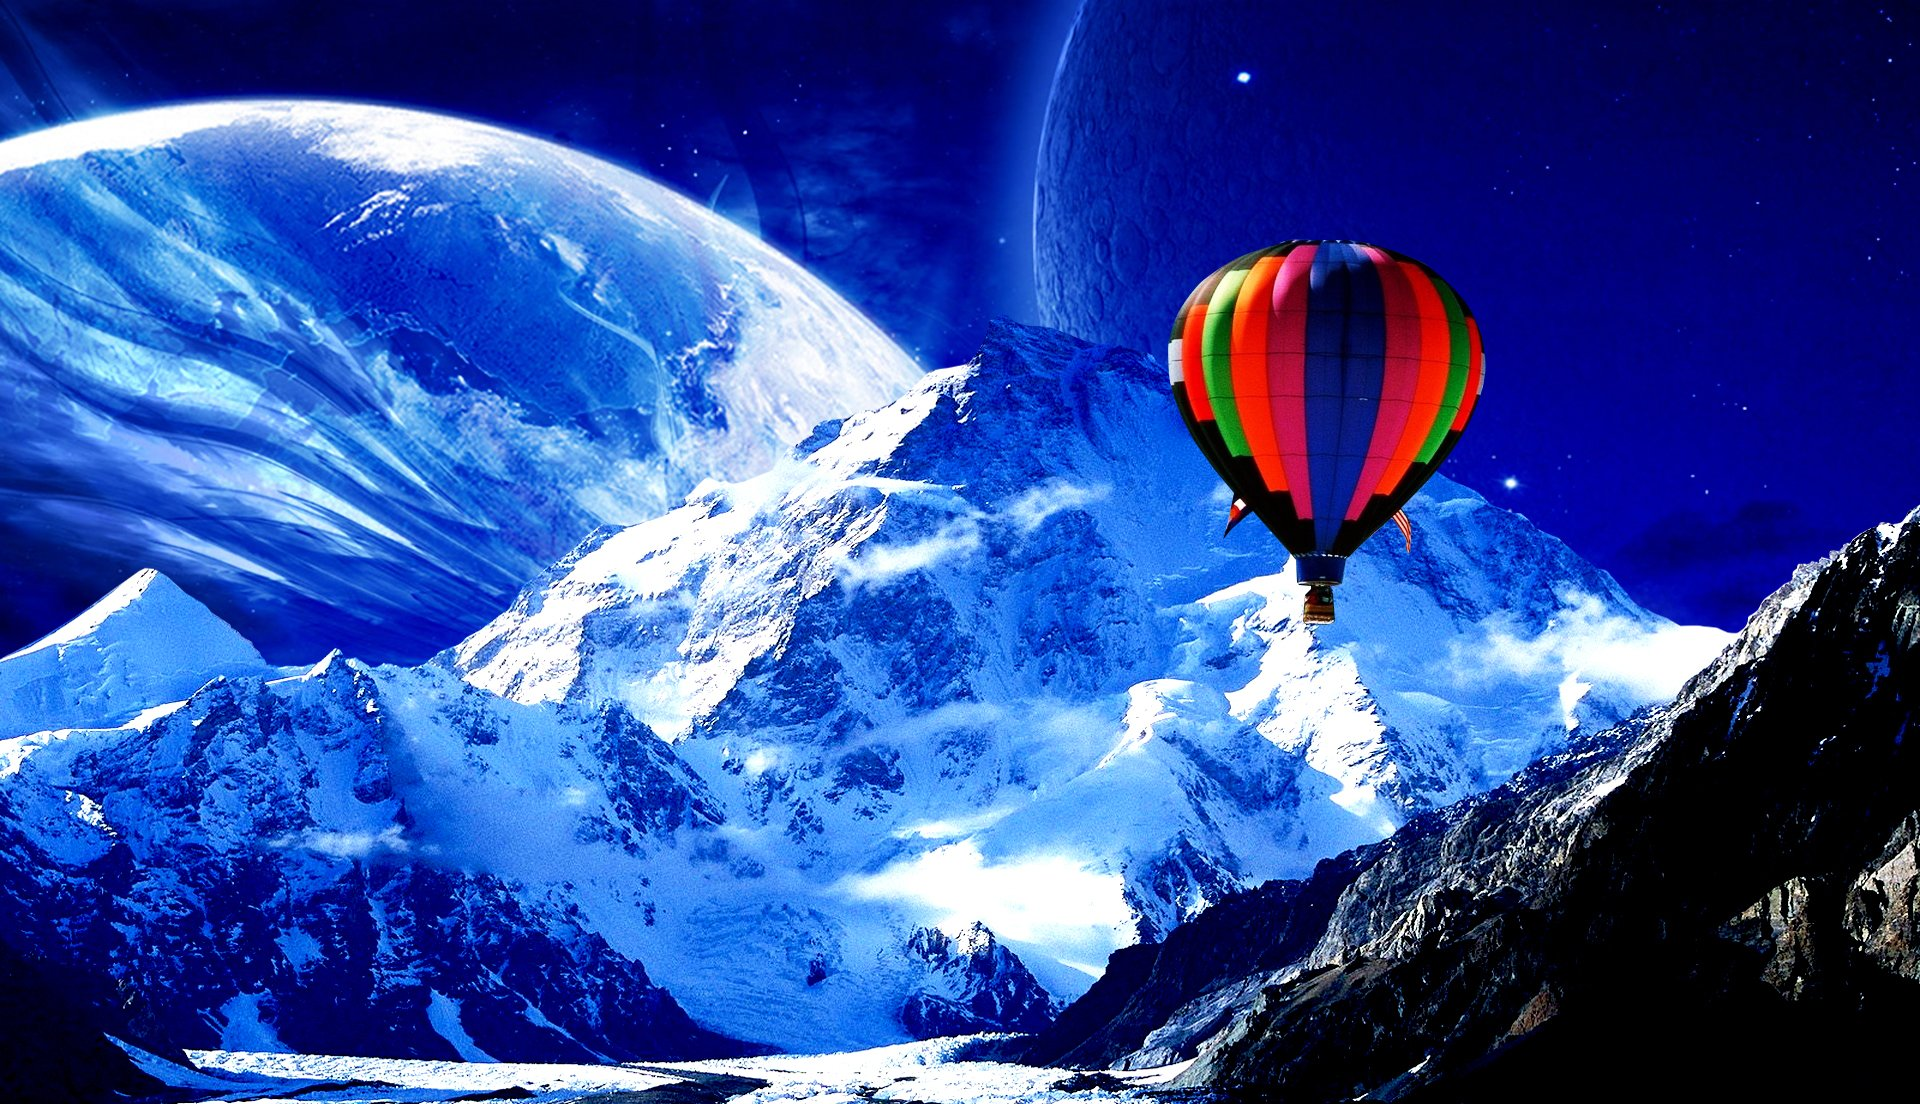 Photography - Manipulation  CGI Digital Art 3D Psychedelic Trippy Landscape Scenic Balloon Abstract Snow Winter Artistic Hot Air Balloon Mountain Moon Wallpaper